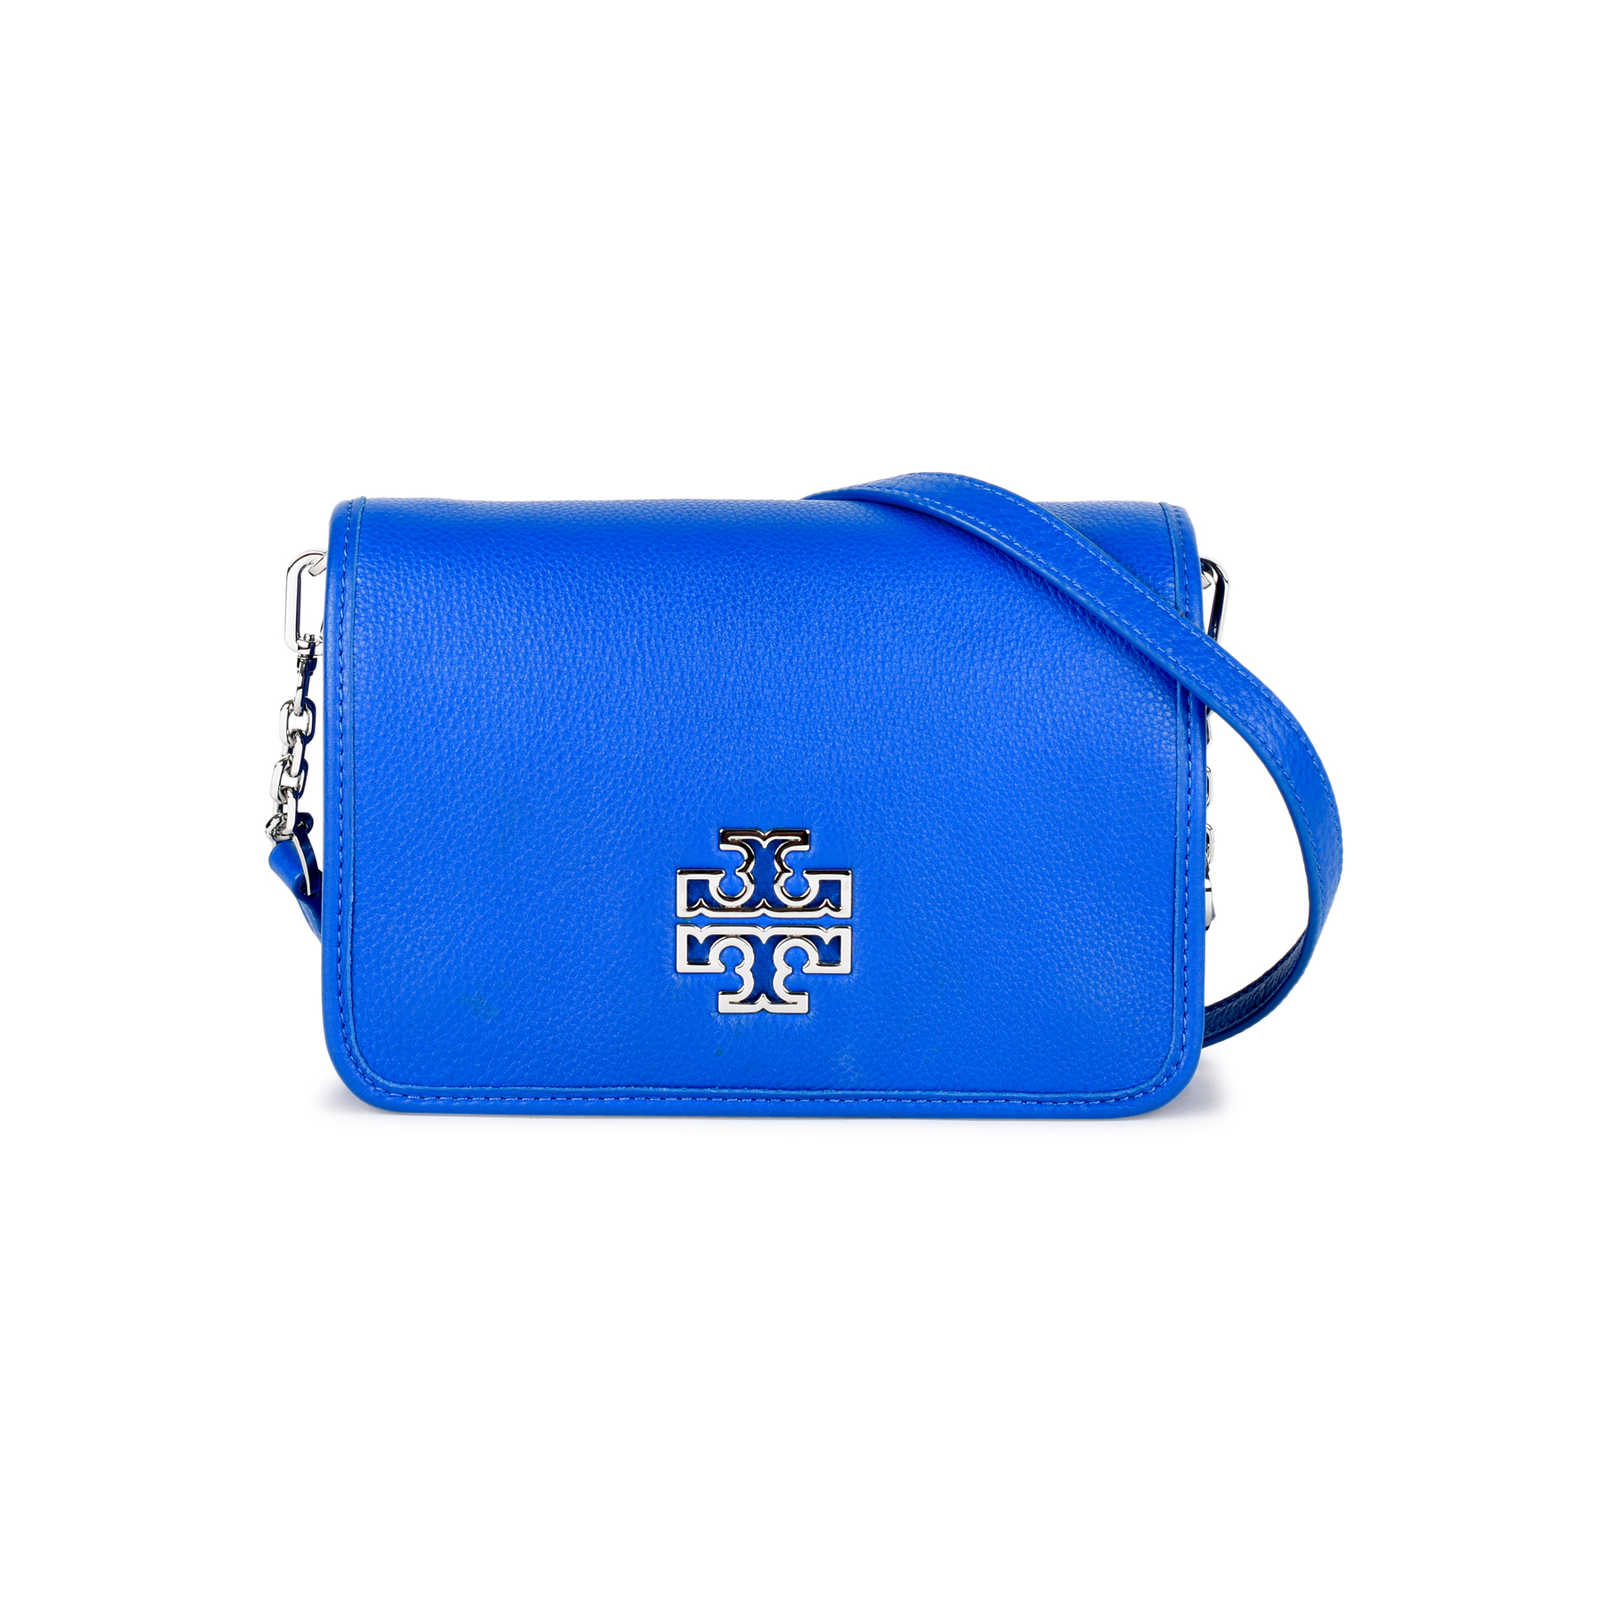 Authentic Pre Owned Tory Burch Britten Combo Crossbody Bag Pss 442 00014